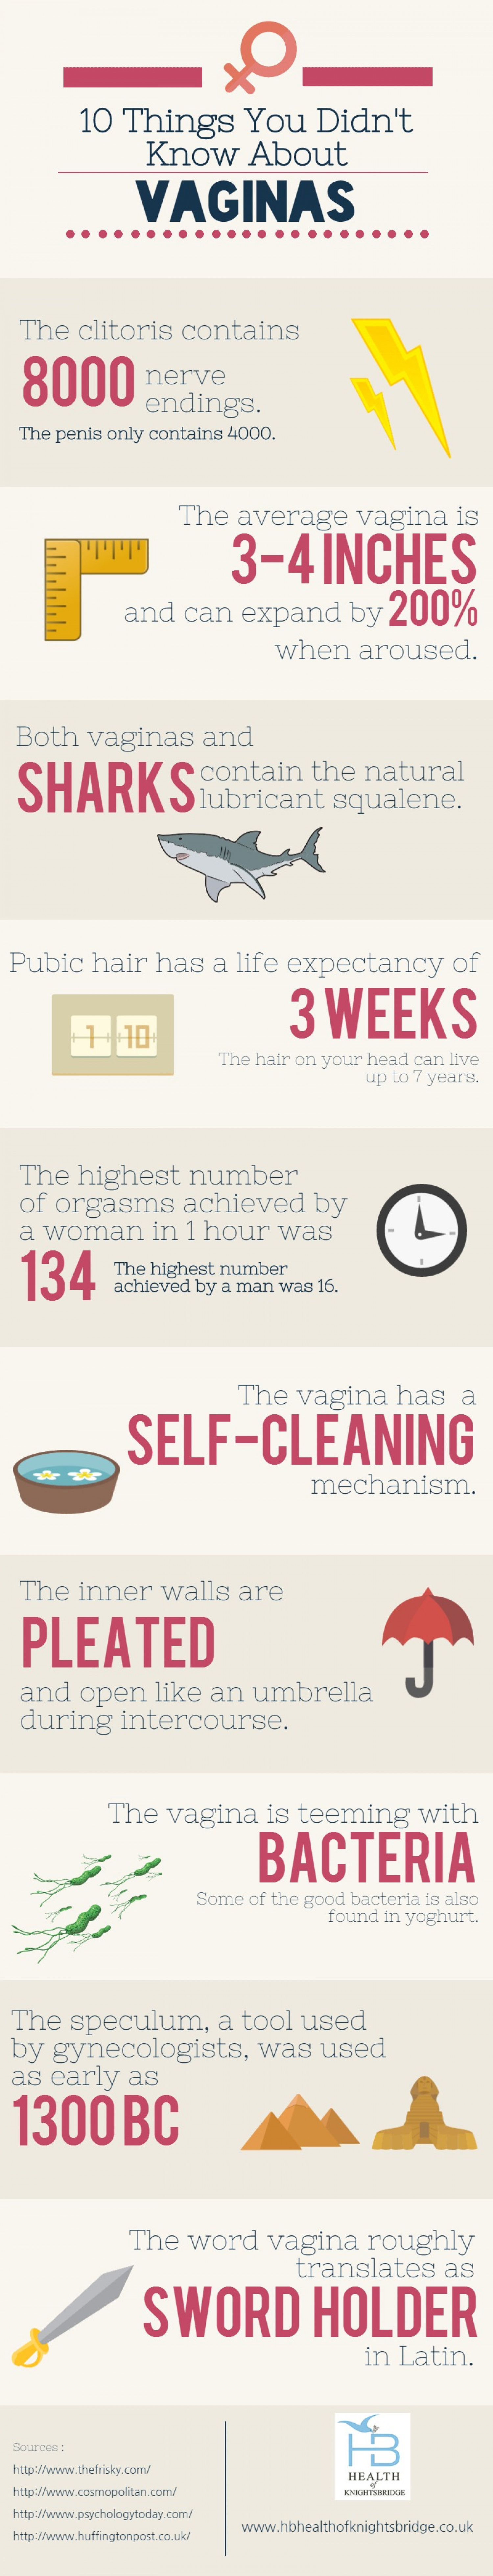 10 Things You Didn't Know About Vaginas Infographic